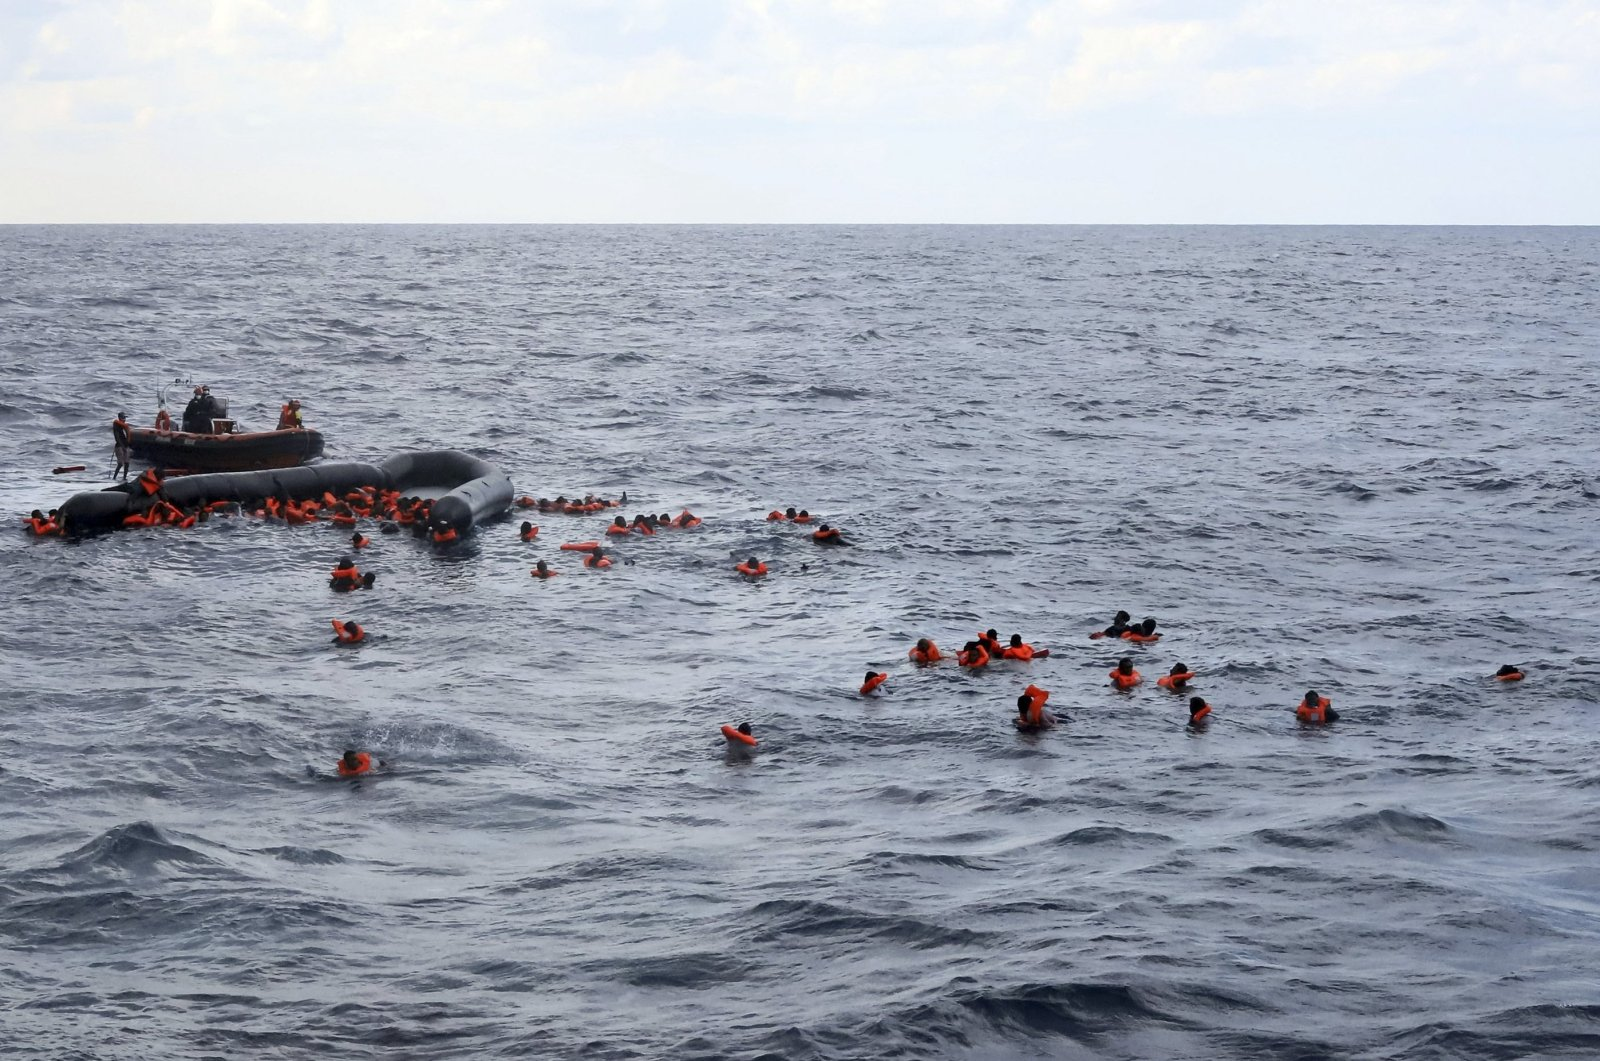 Refugees and migrants are rescued by members of the Spanish NGO Proactiva Open Arms, after leaving Libya trying to reach European soil aboard an overcrowded rubber boat in the Mediterranean sea, Nov. 11, 2020. (AP File Photo)